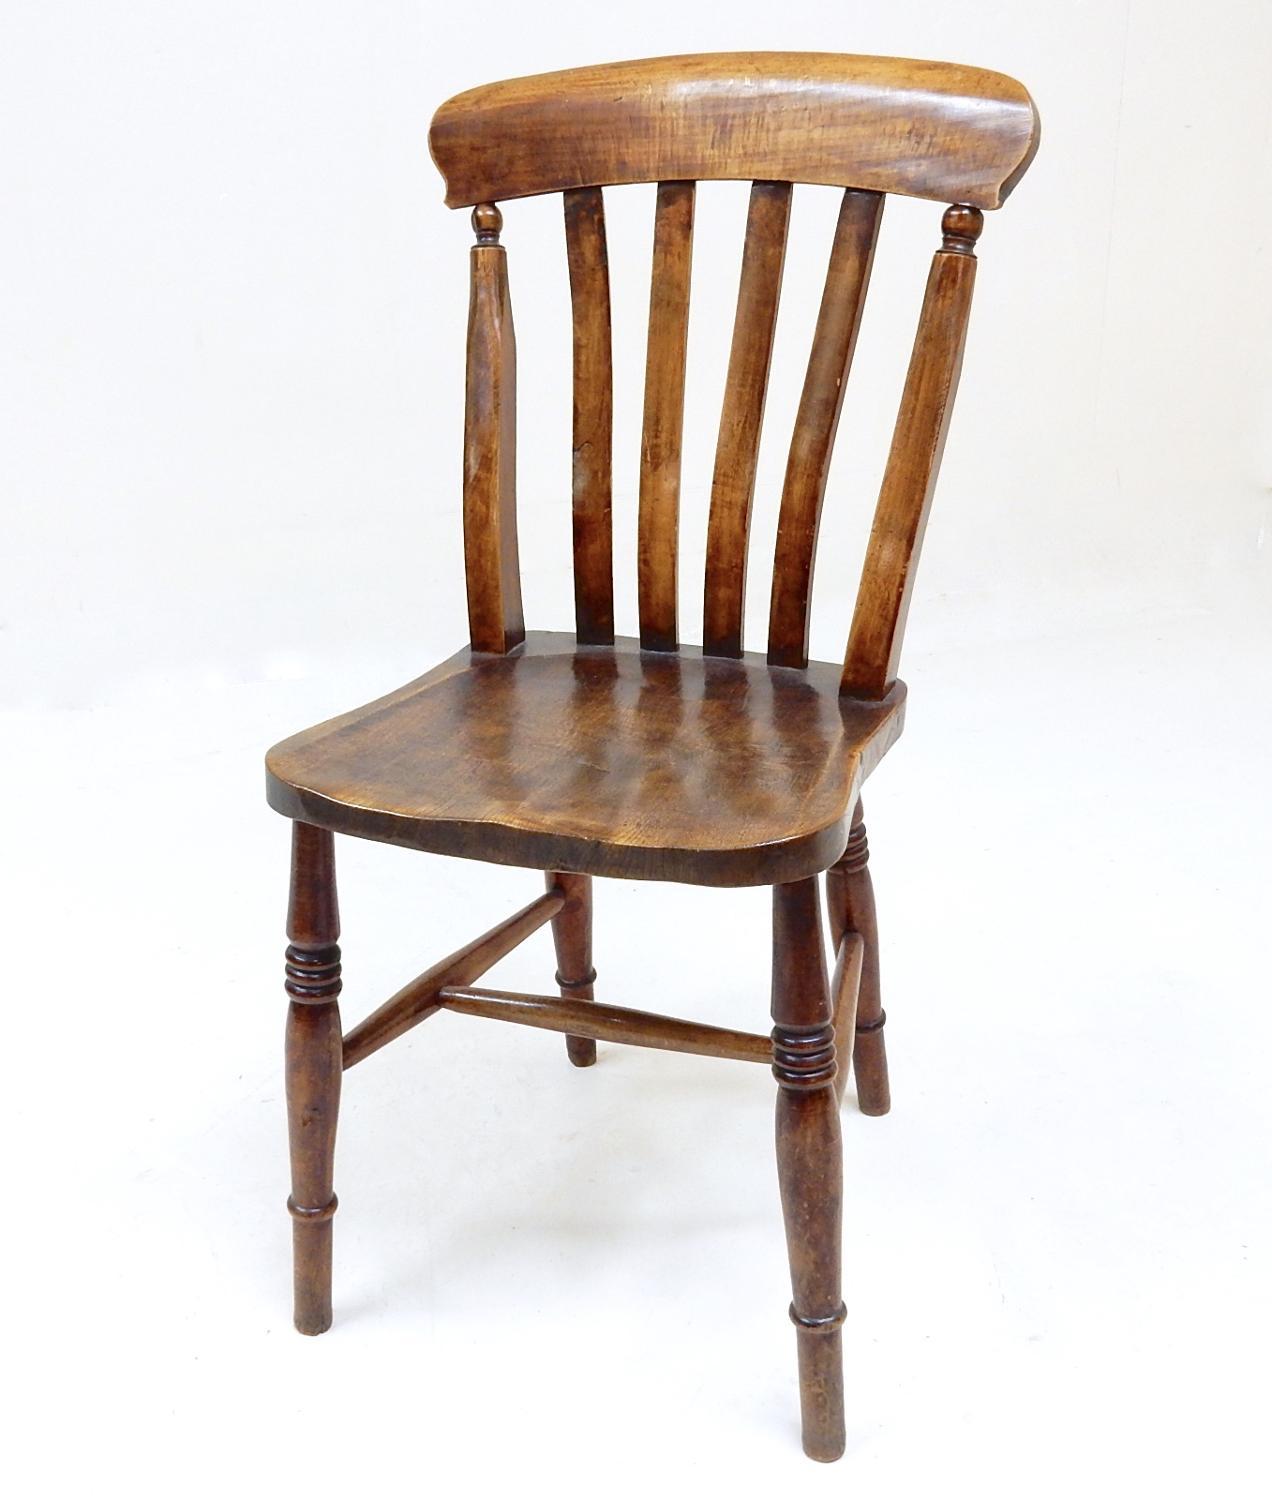 Kitchen Chairs Vintage: Antique Kitchen Chairs In Tables And Chairs